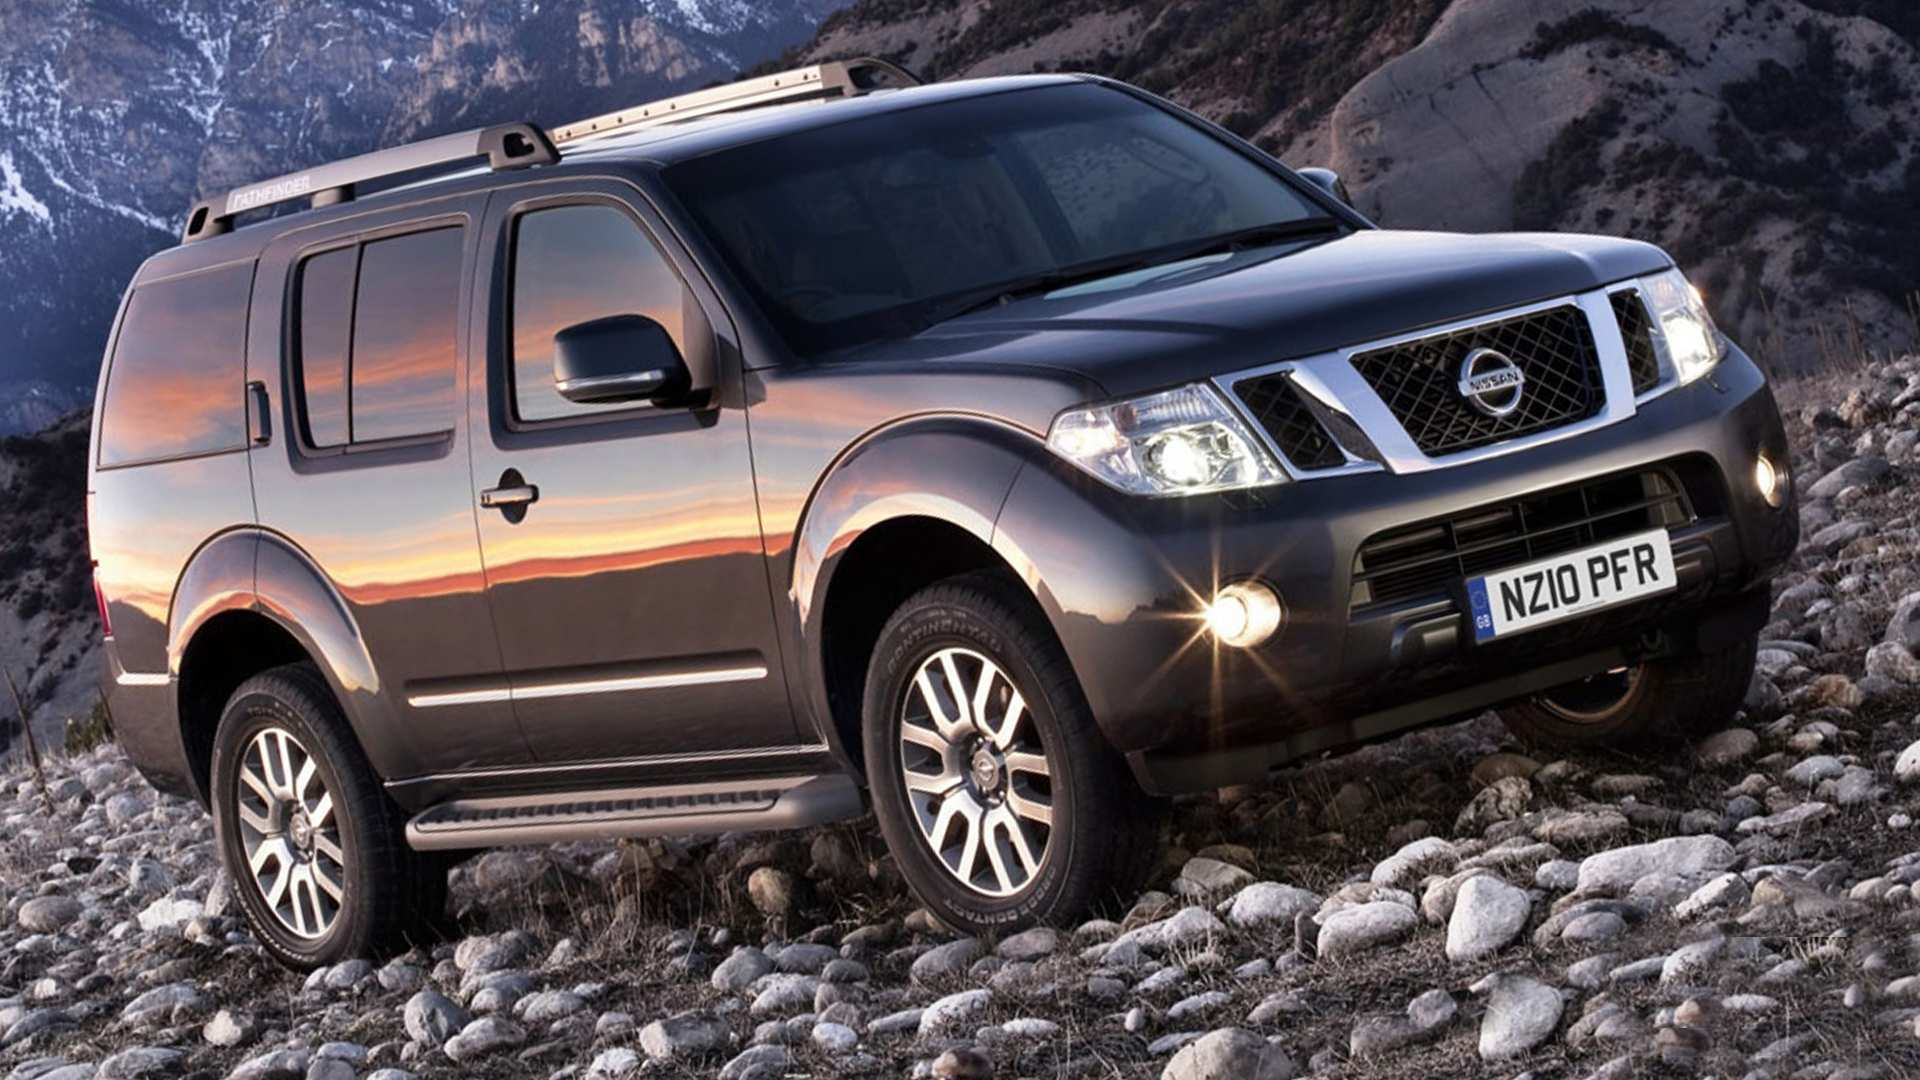 73 New New 2019 Nissan Pathfinder Hybrid New Review Release by New 2019 Nissan Pathfinder Hybrid New Review